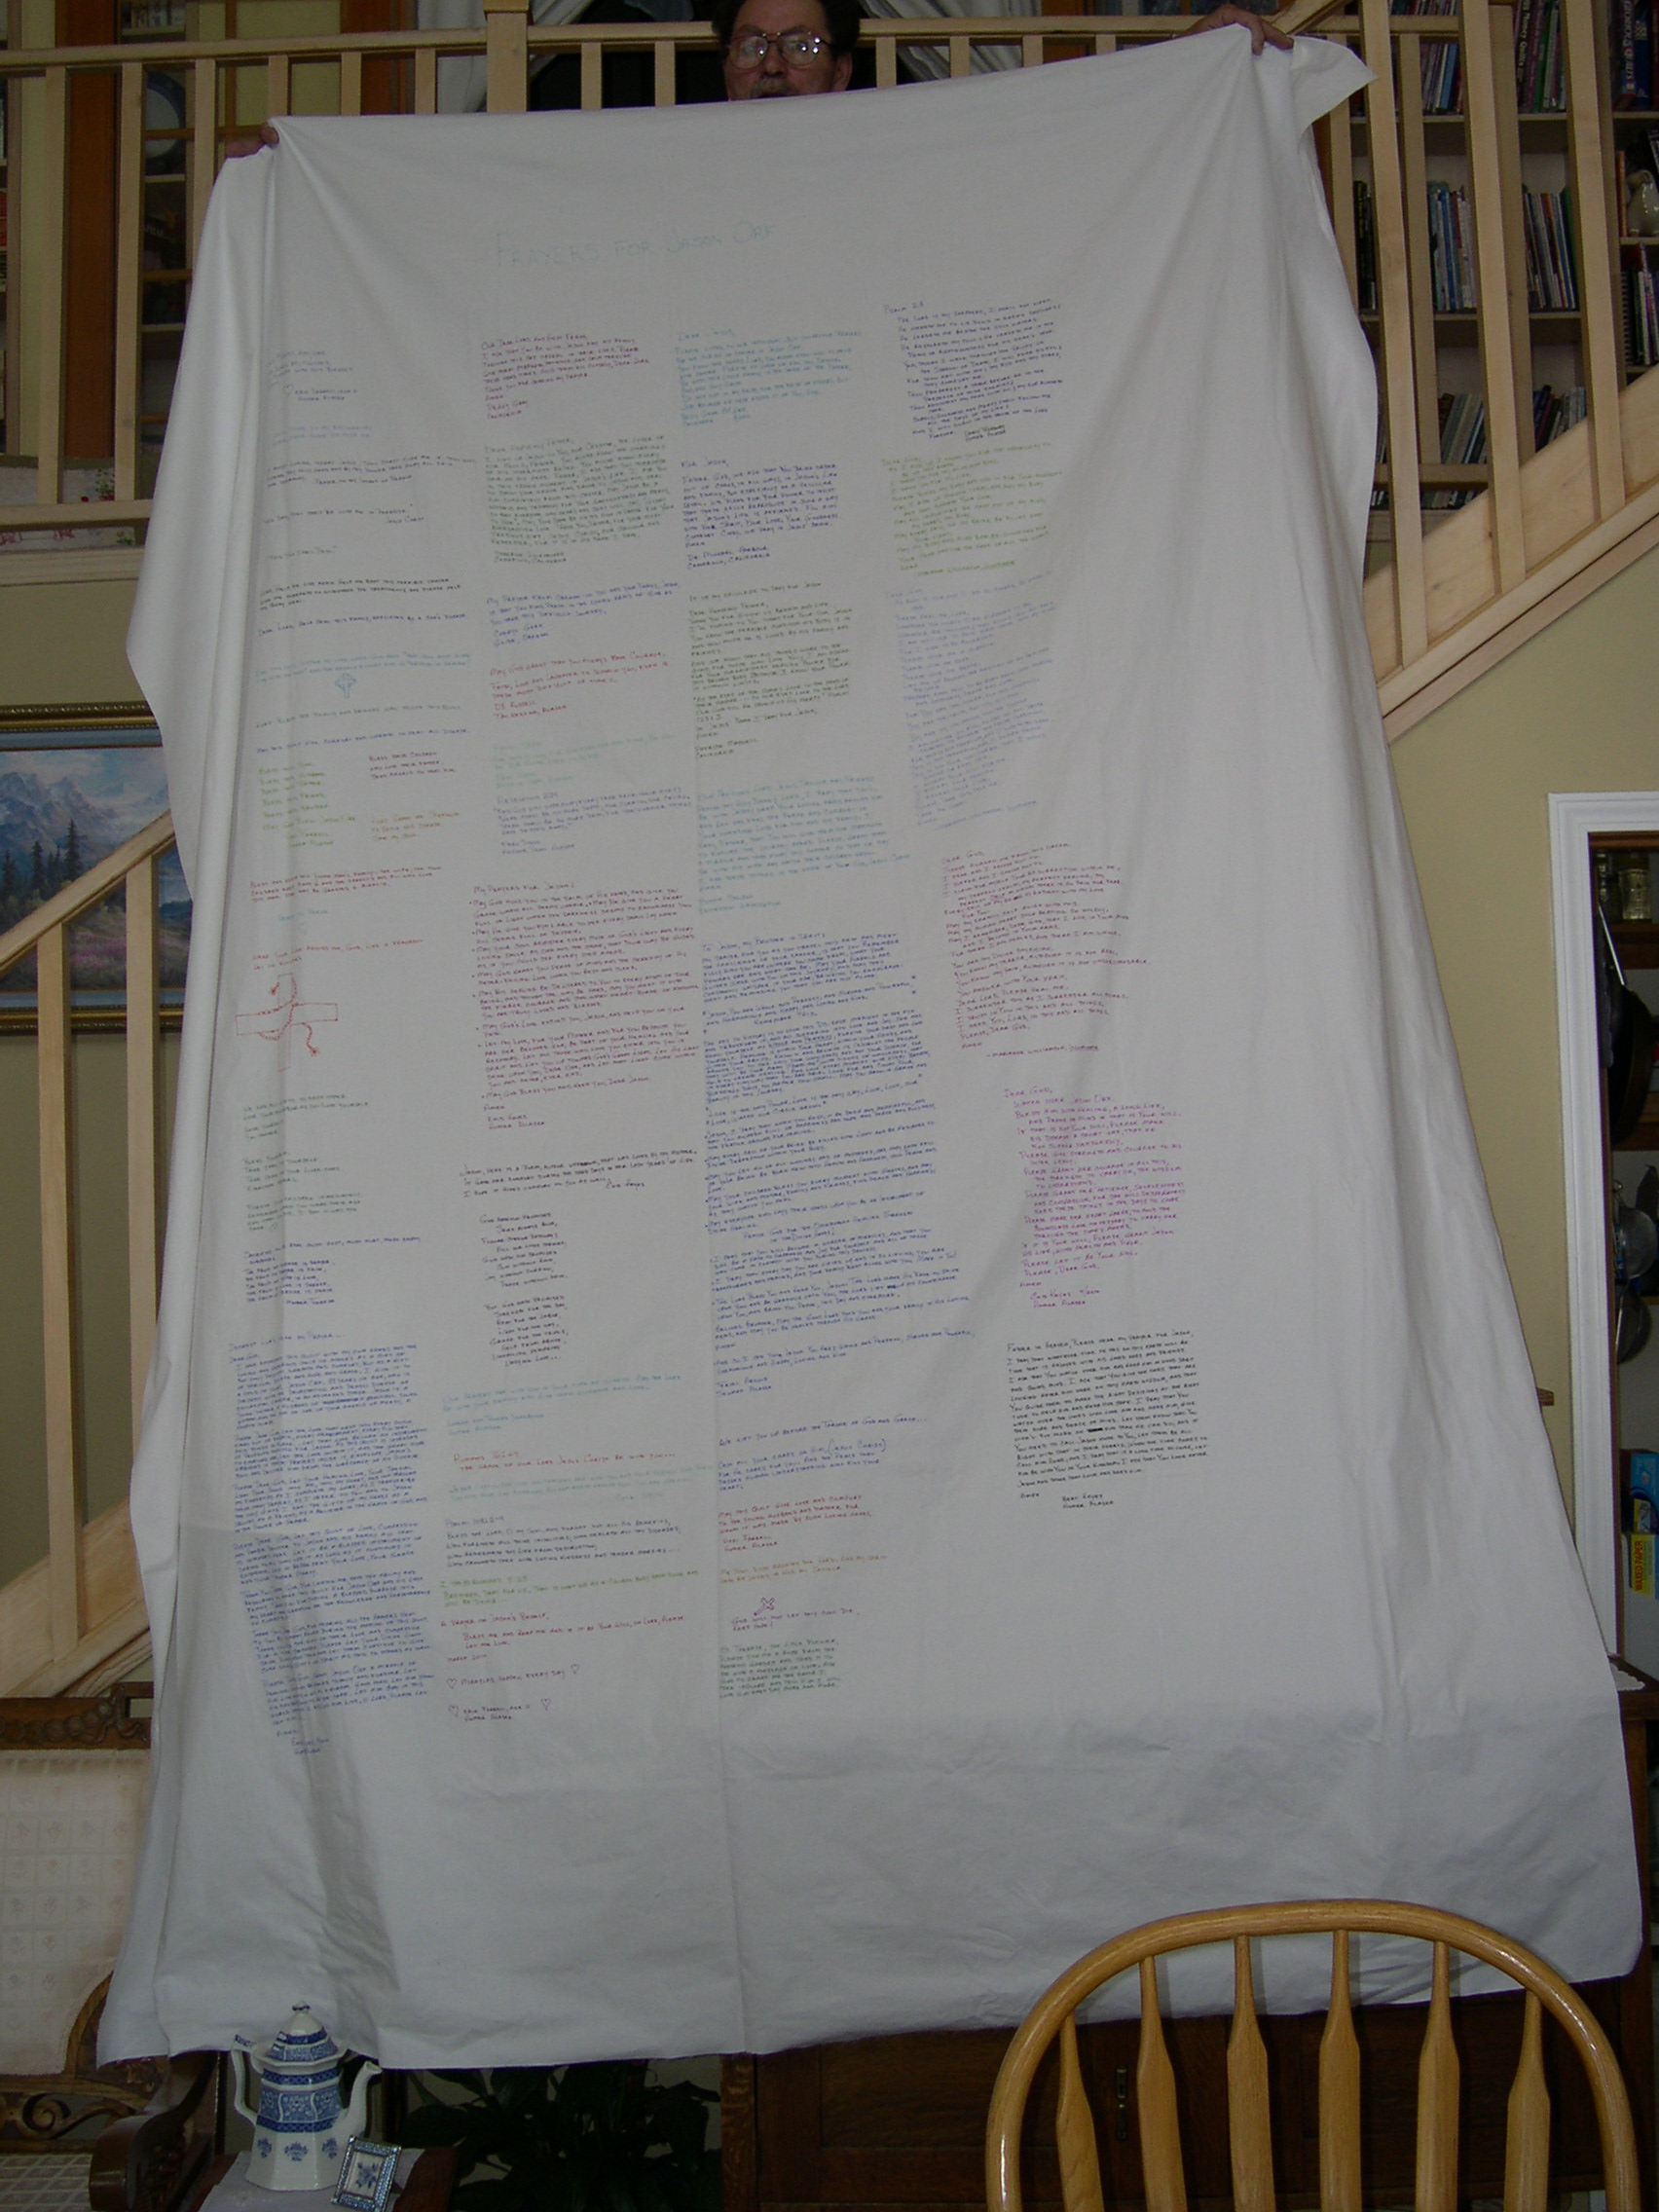 Muslin Fabric with Prayers by Enid Keyes